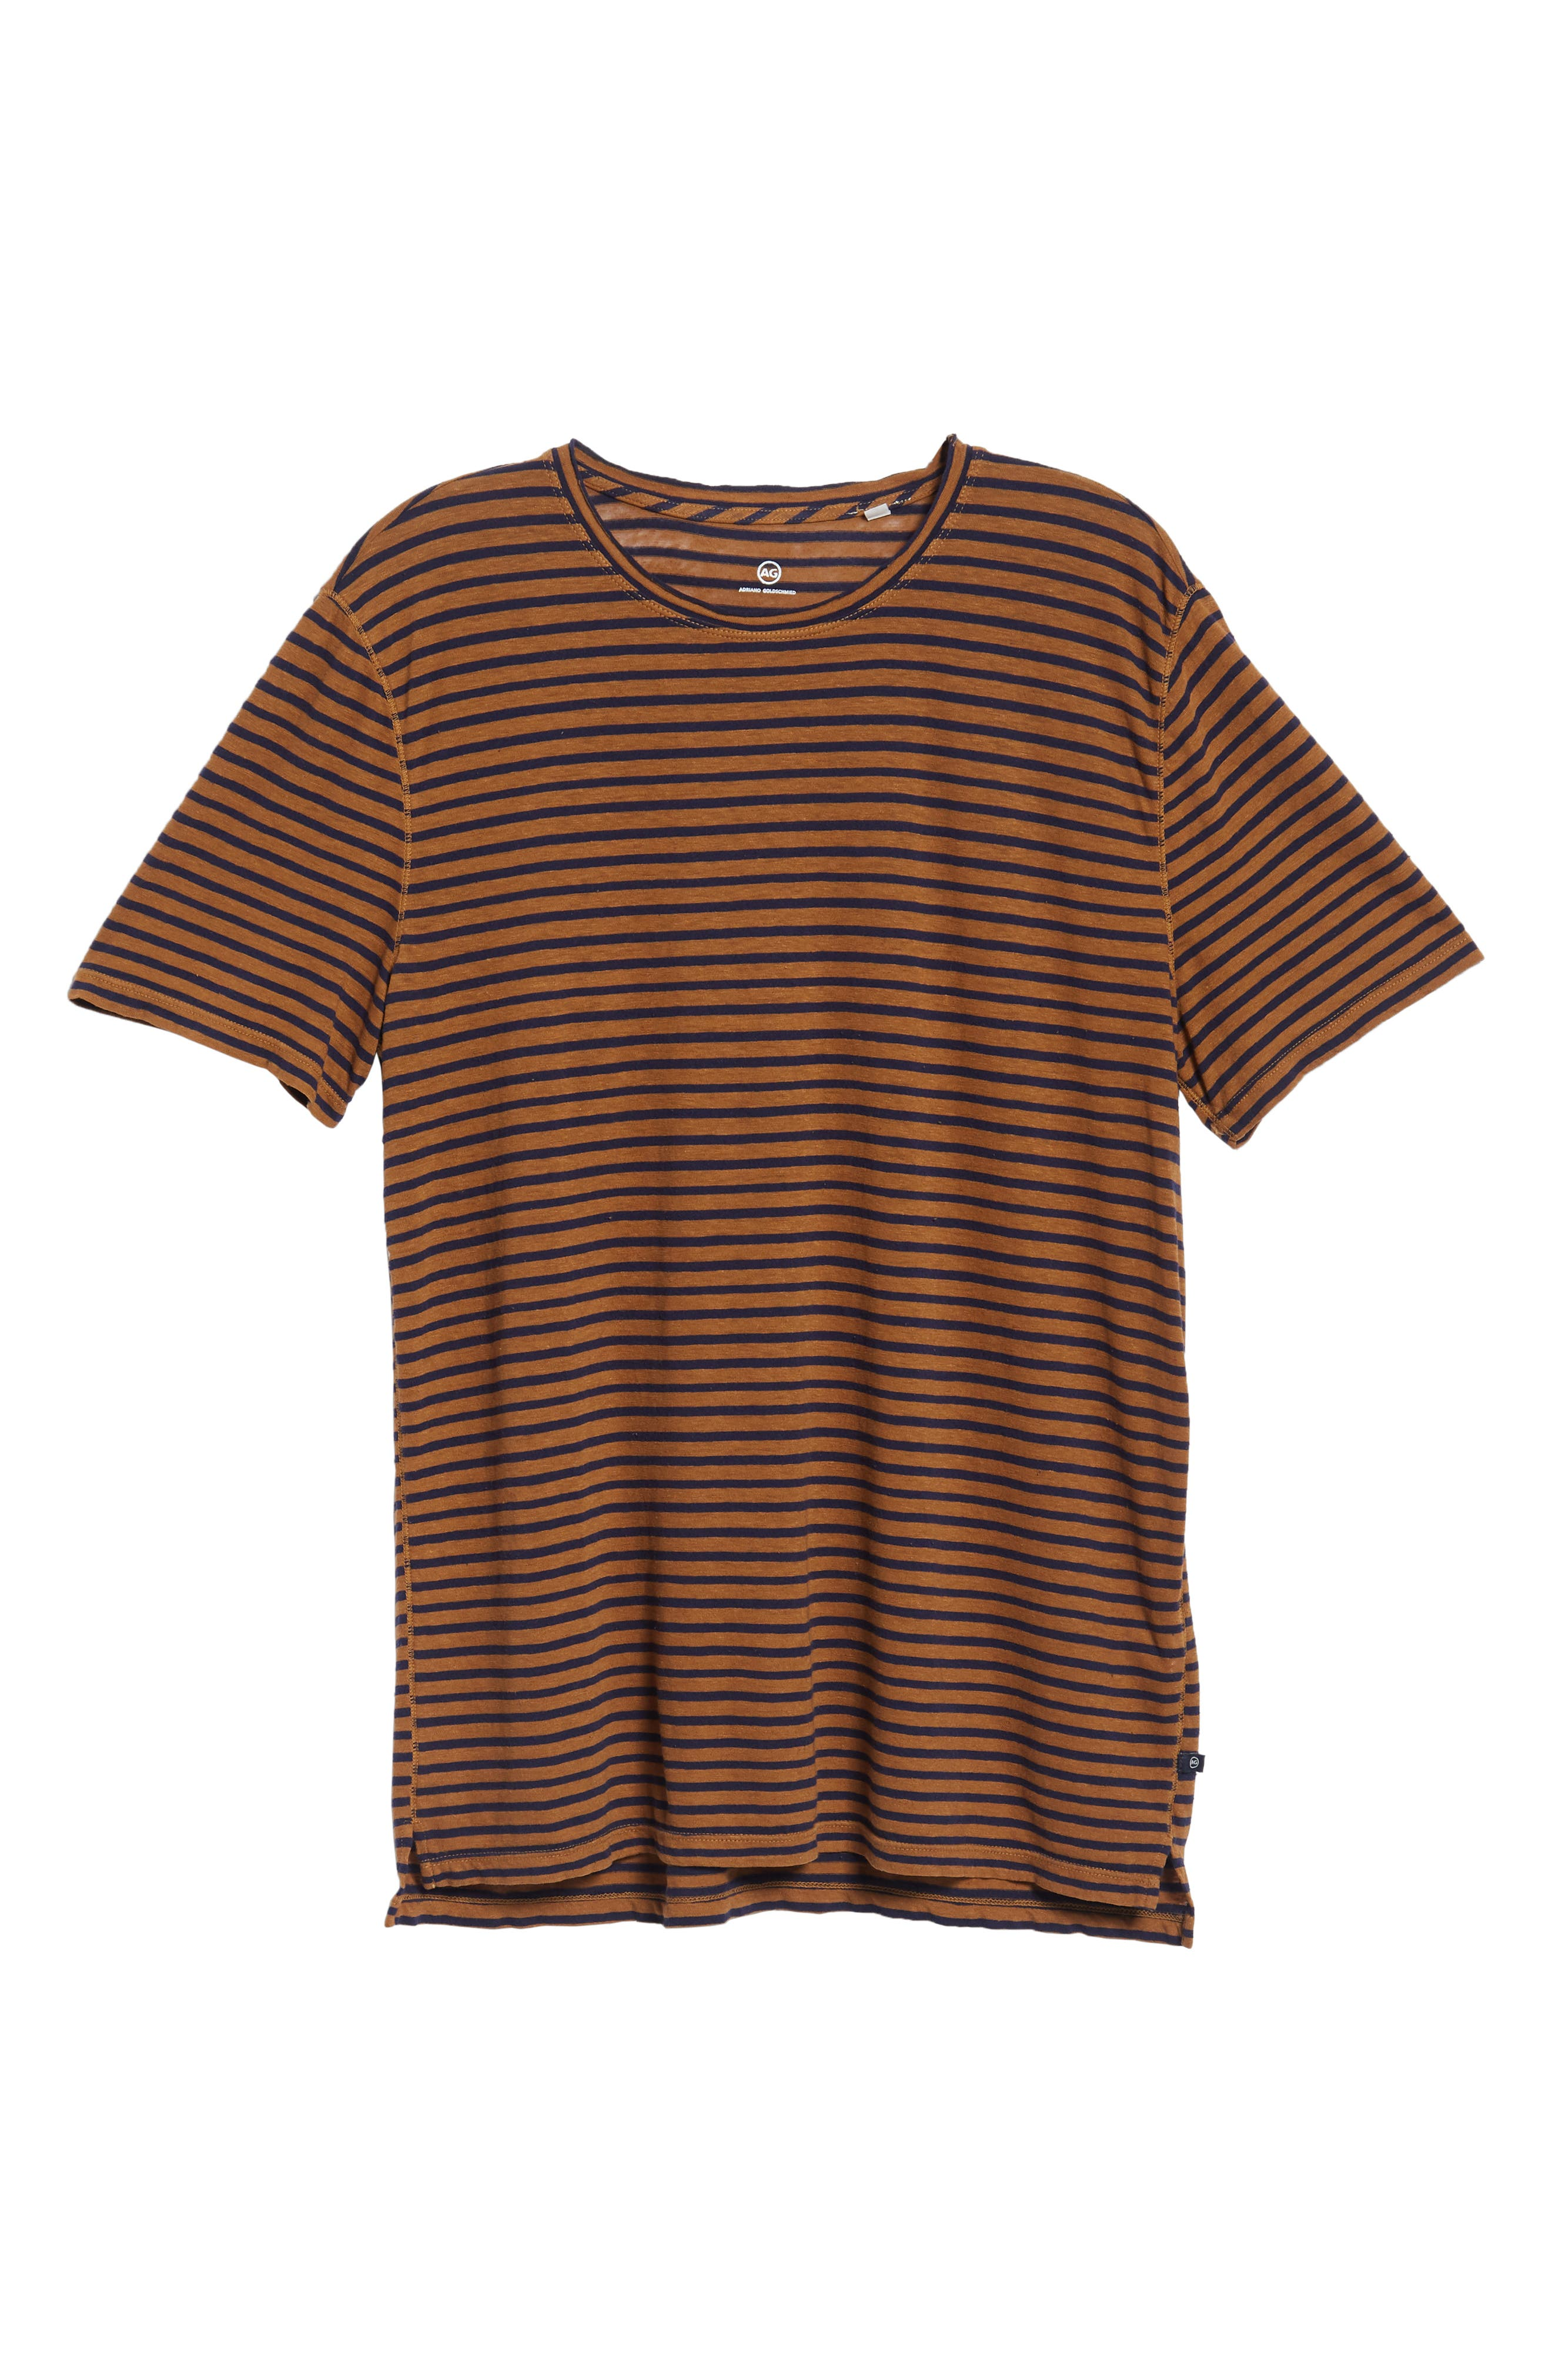 Theo Striped Cotton & Linen T-Shirt,                             Alternate thumbnail 6, color,                             BRONZE CLAY/ NAVY